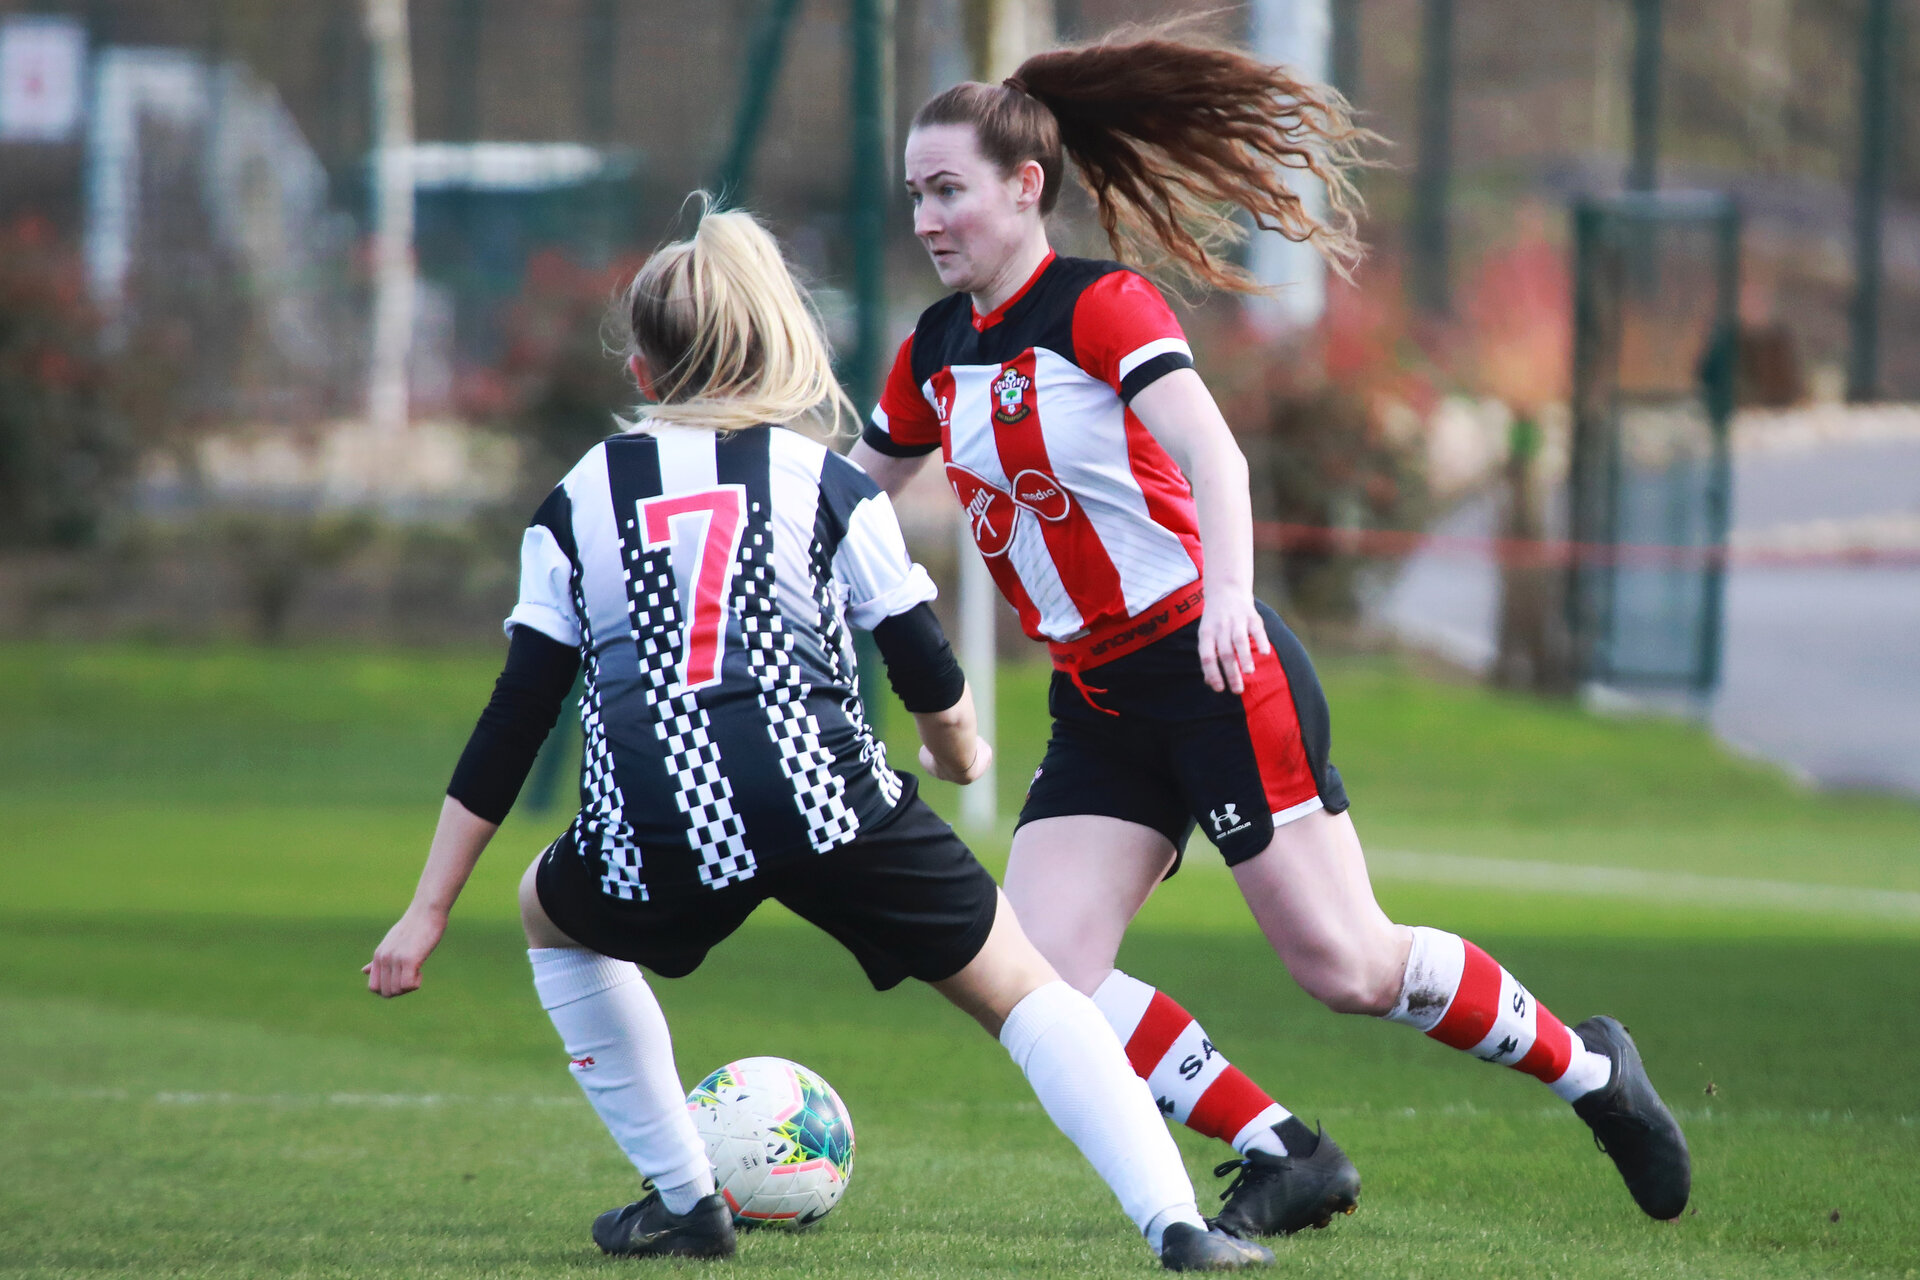 SOUTHAMPTON, ENGLAND - March 1: Charley Evans of Southampton FC Womens during the FA WomenÕs National League match between Southampton Women and Maidenhead United at Staplewood Campus on March 1 2020, Exeter, England. (Photo by Tom Mulholland/Southampton FC) SOUTHAMPTON, ENGLAND - March 1: Charley Evans of Southampton FC Womens during the FA Women's National League match between Southampton Women and Maidenhead United at Staplewood Campus on March 1 2020, Exeter, England. (Photo by Tom Mulholland/Southampton FC)